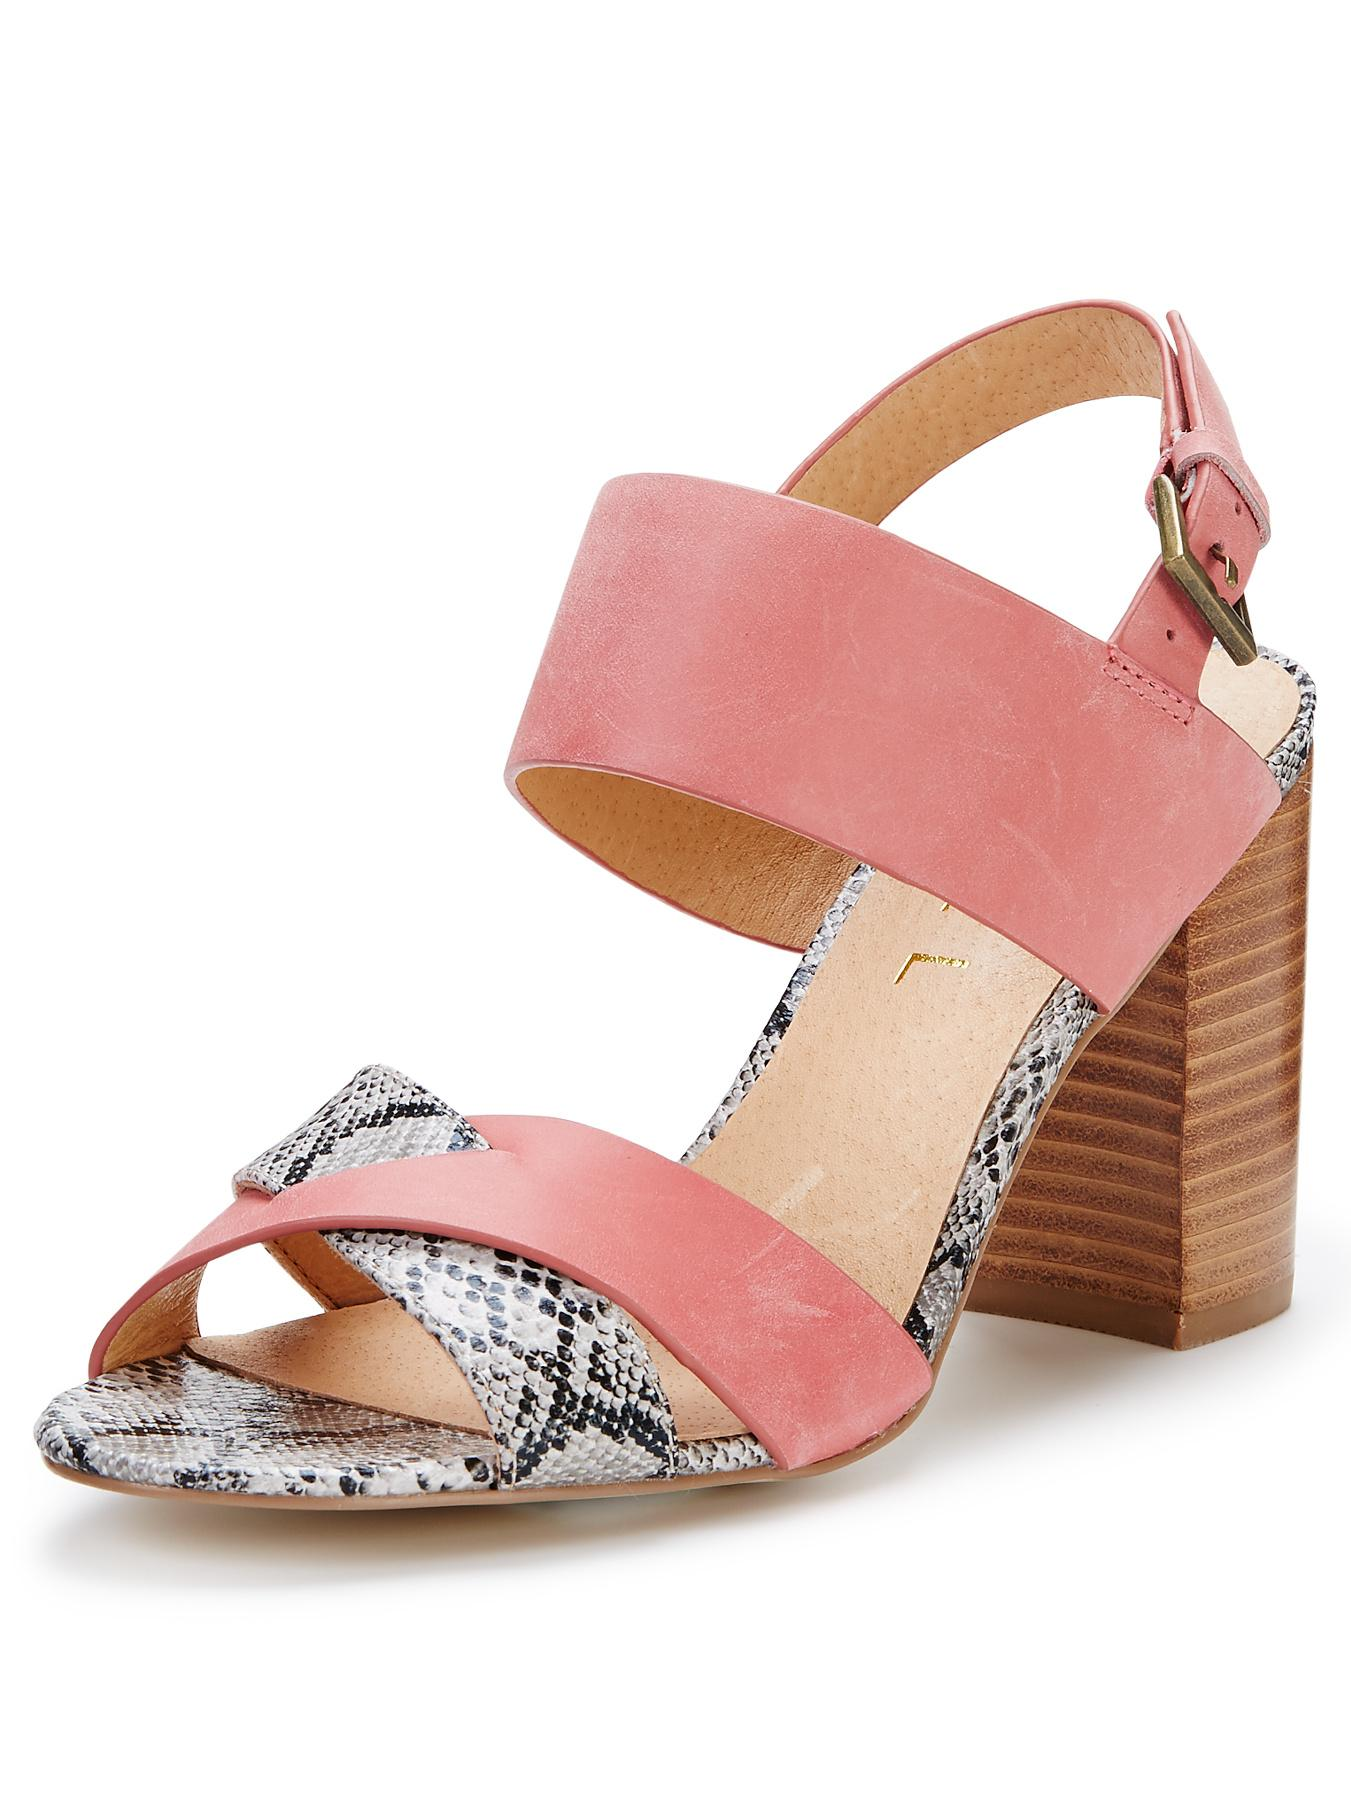 Ravel Tucson Block Heeled Sandal